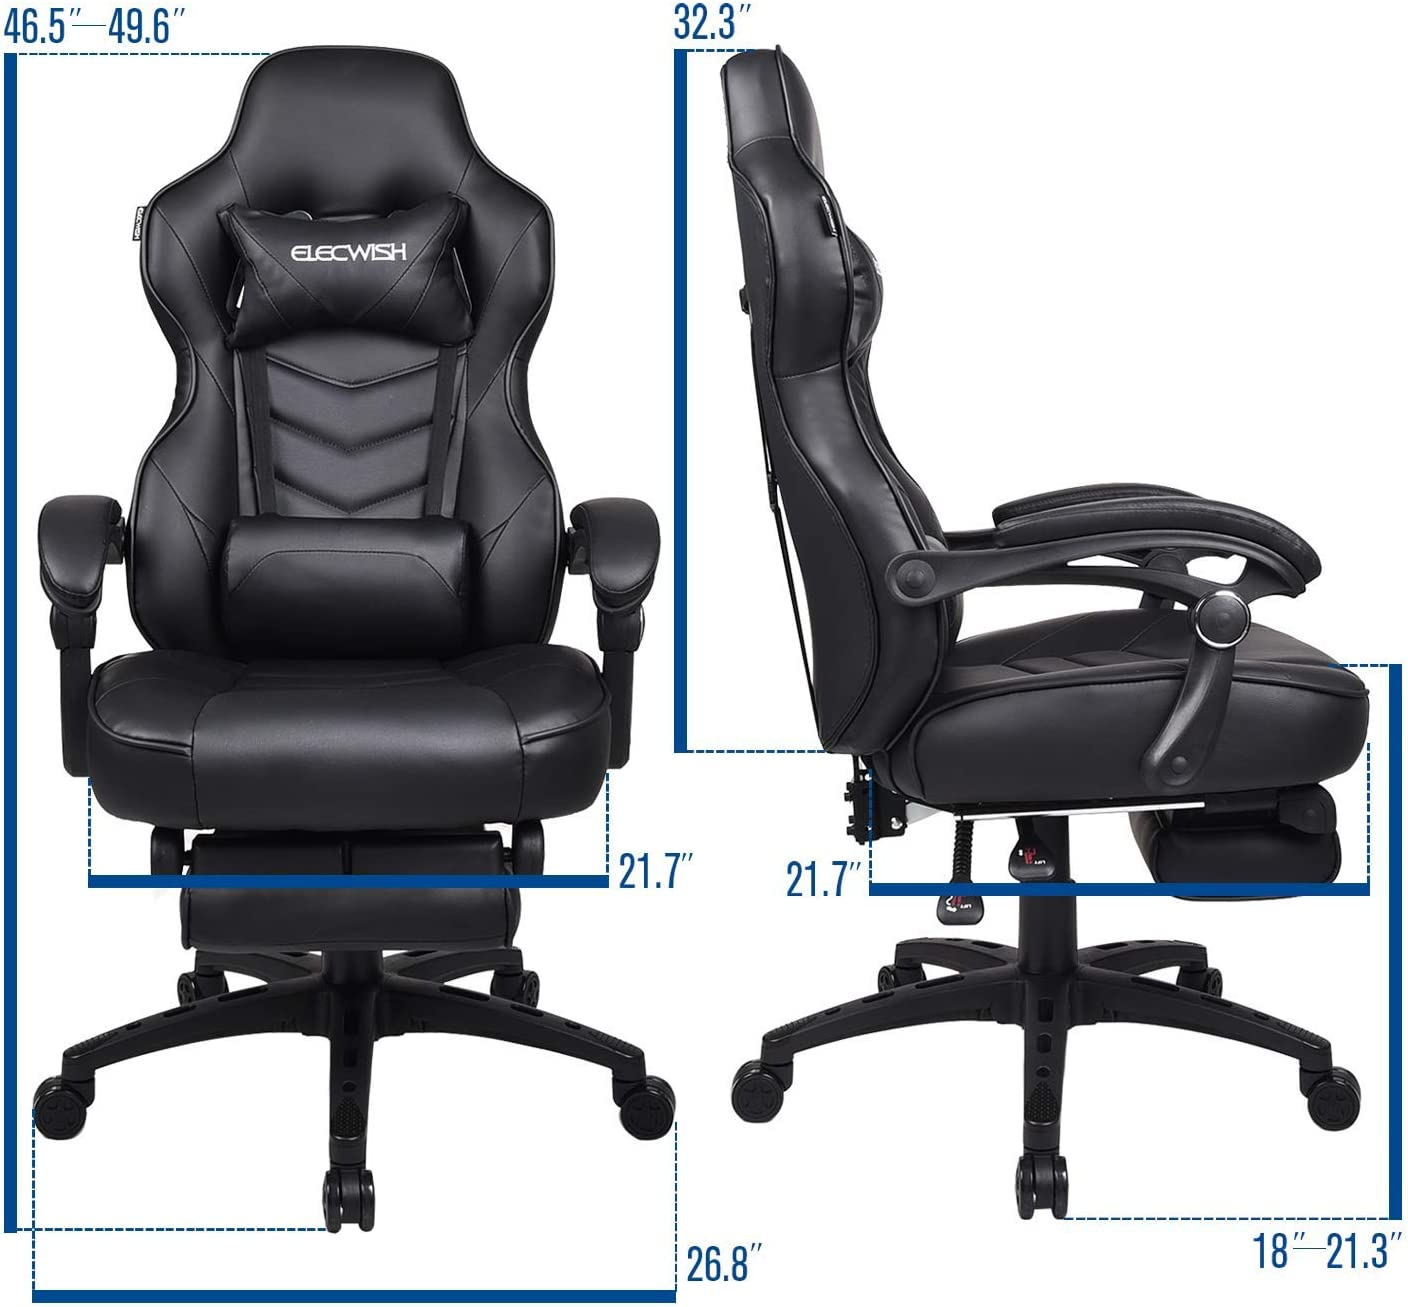 Video Gaming Chair Racing Office Orange Reclining PU Leather High Back Ergonomic Adjustable Swivel Executive Computer Desk Large Size Footrest Headrest Lumbar Support Adjustable arms Cushion